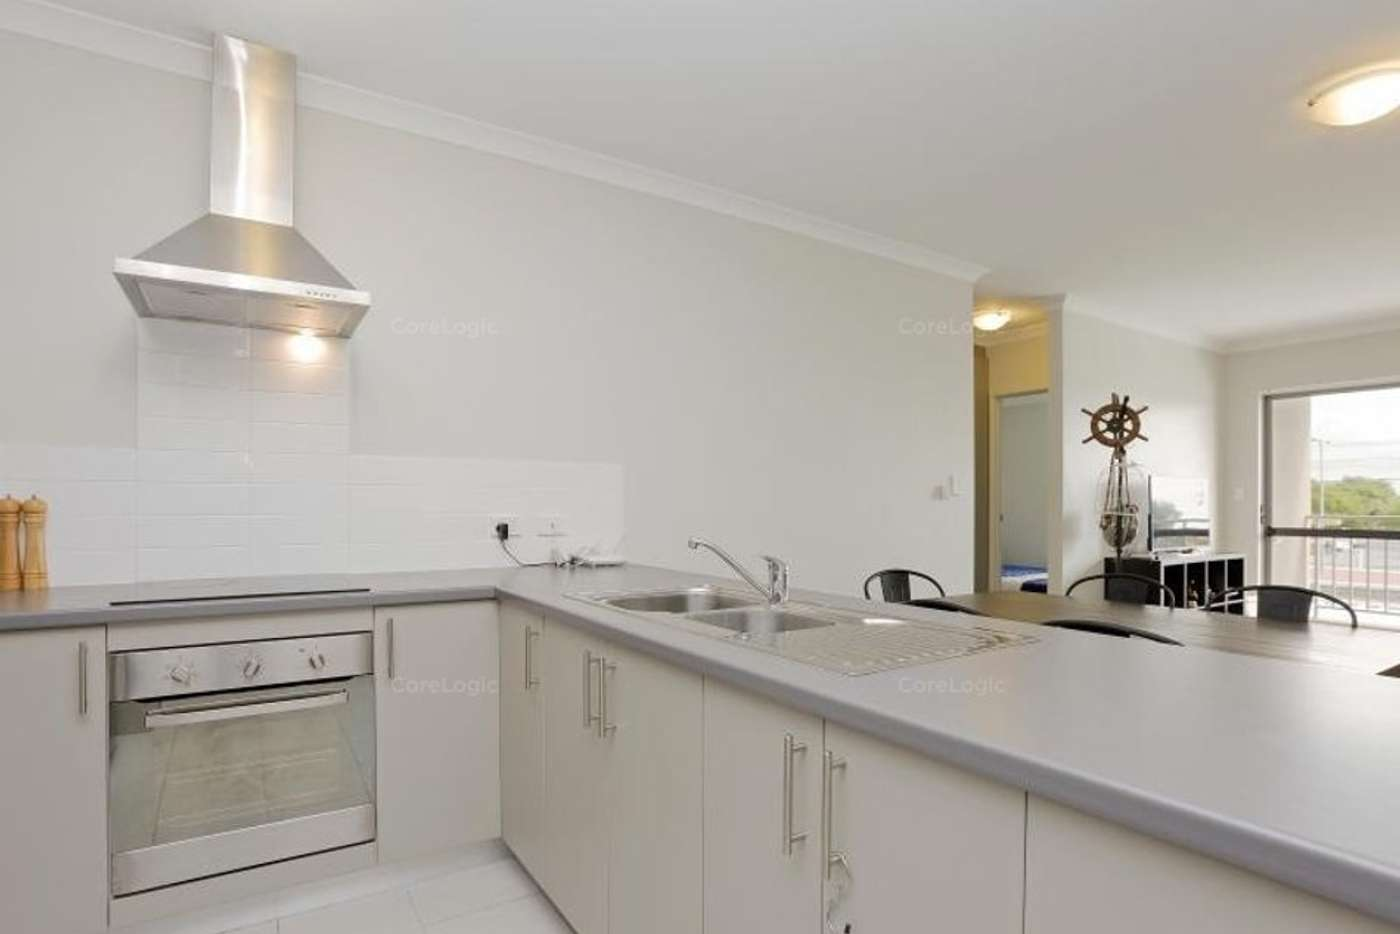 Sixth view of Homely apartment listing, 15/148 Railway Parade, Queens Park WA 6107